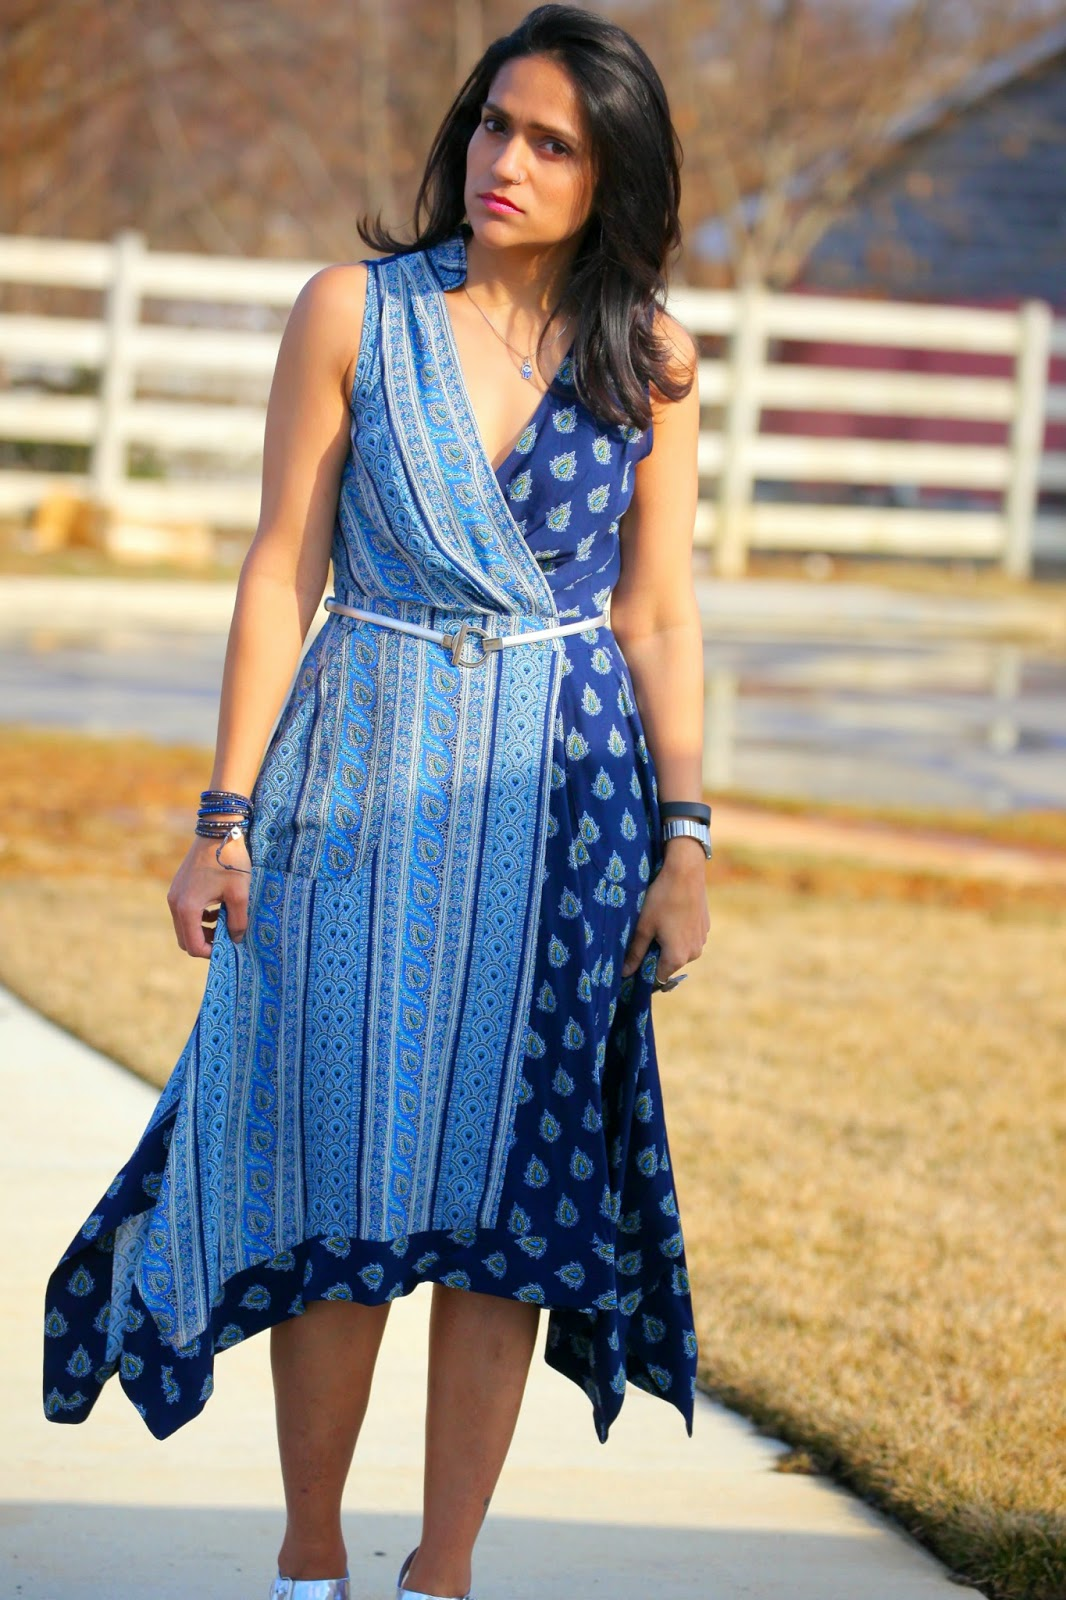 Dress - Anthropologie Shoes - Nordstrom Pendant - Crazy & Co. Wrap Bracelet - Nakamol Tanvii.com